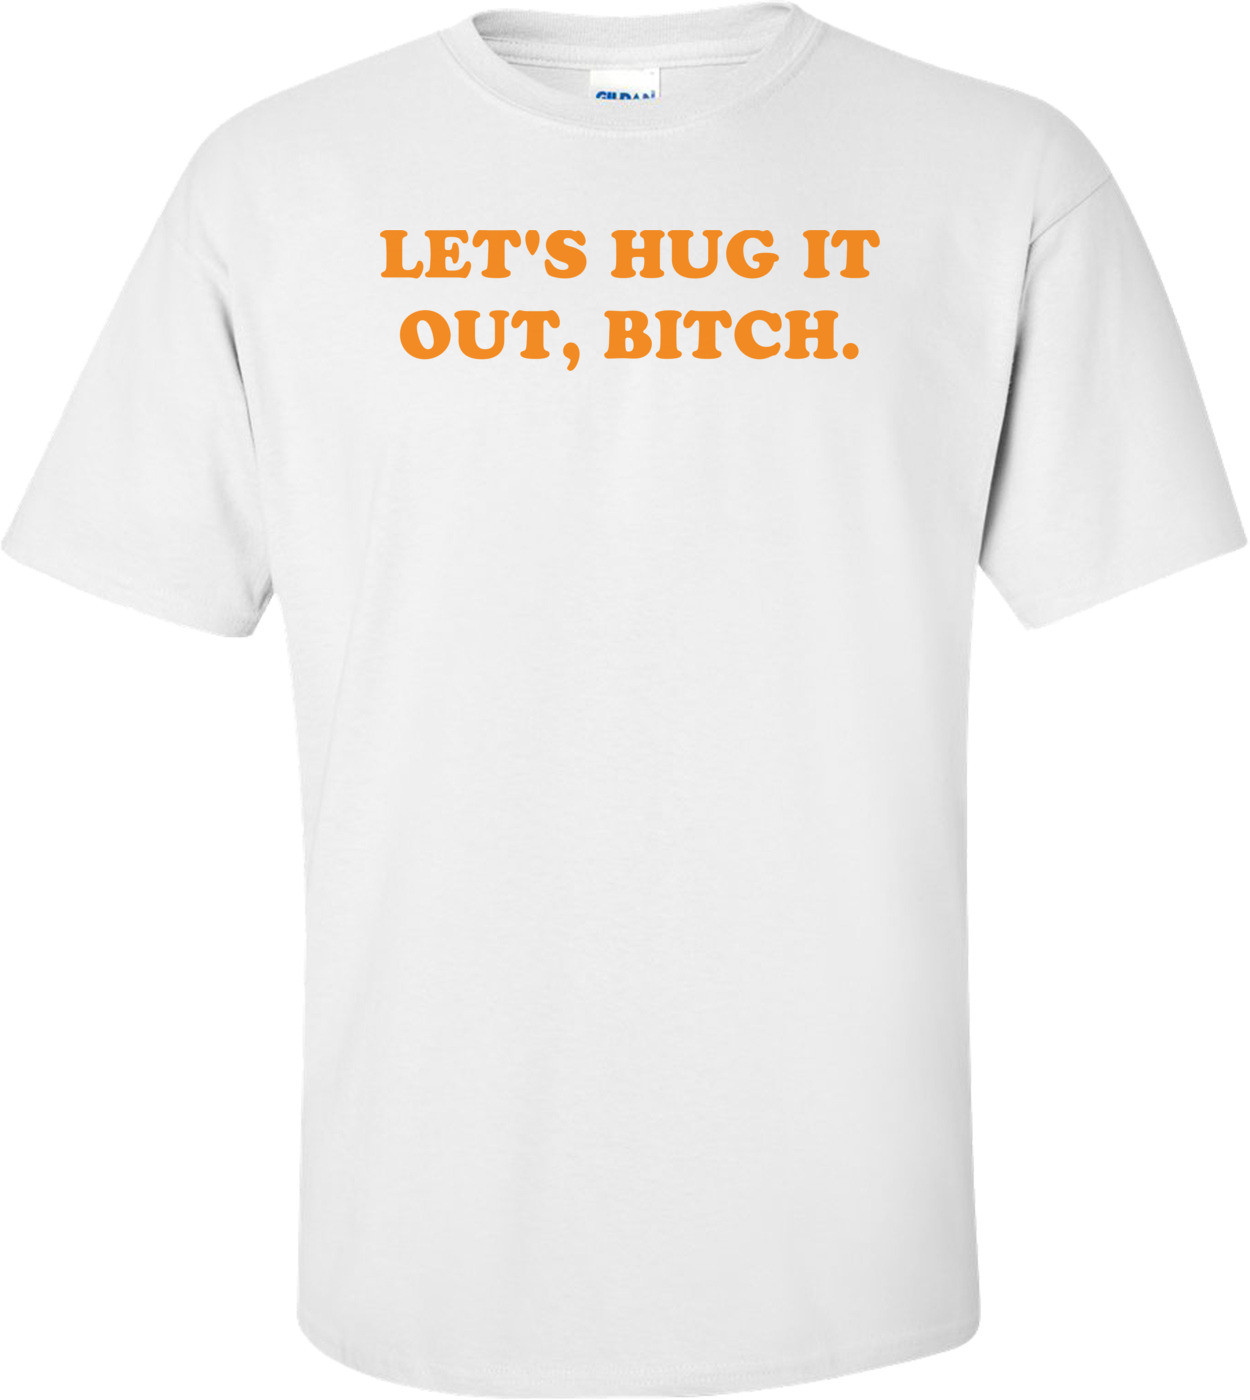 LET'S HUG IT OUT, BITCH. Shirt